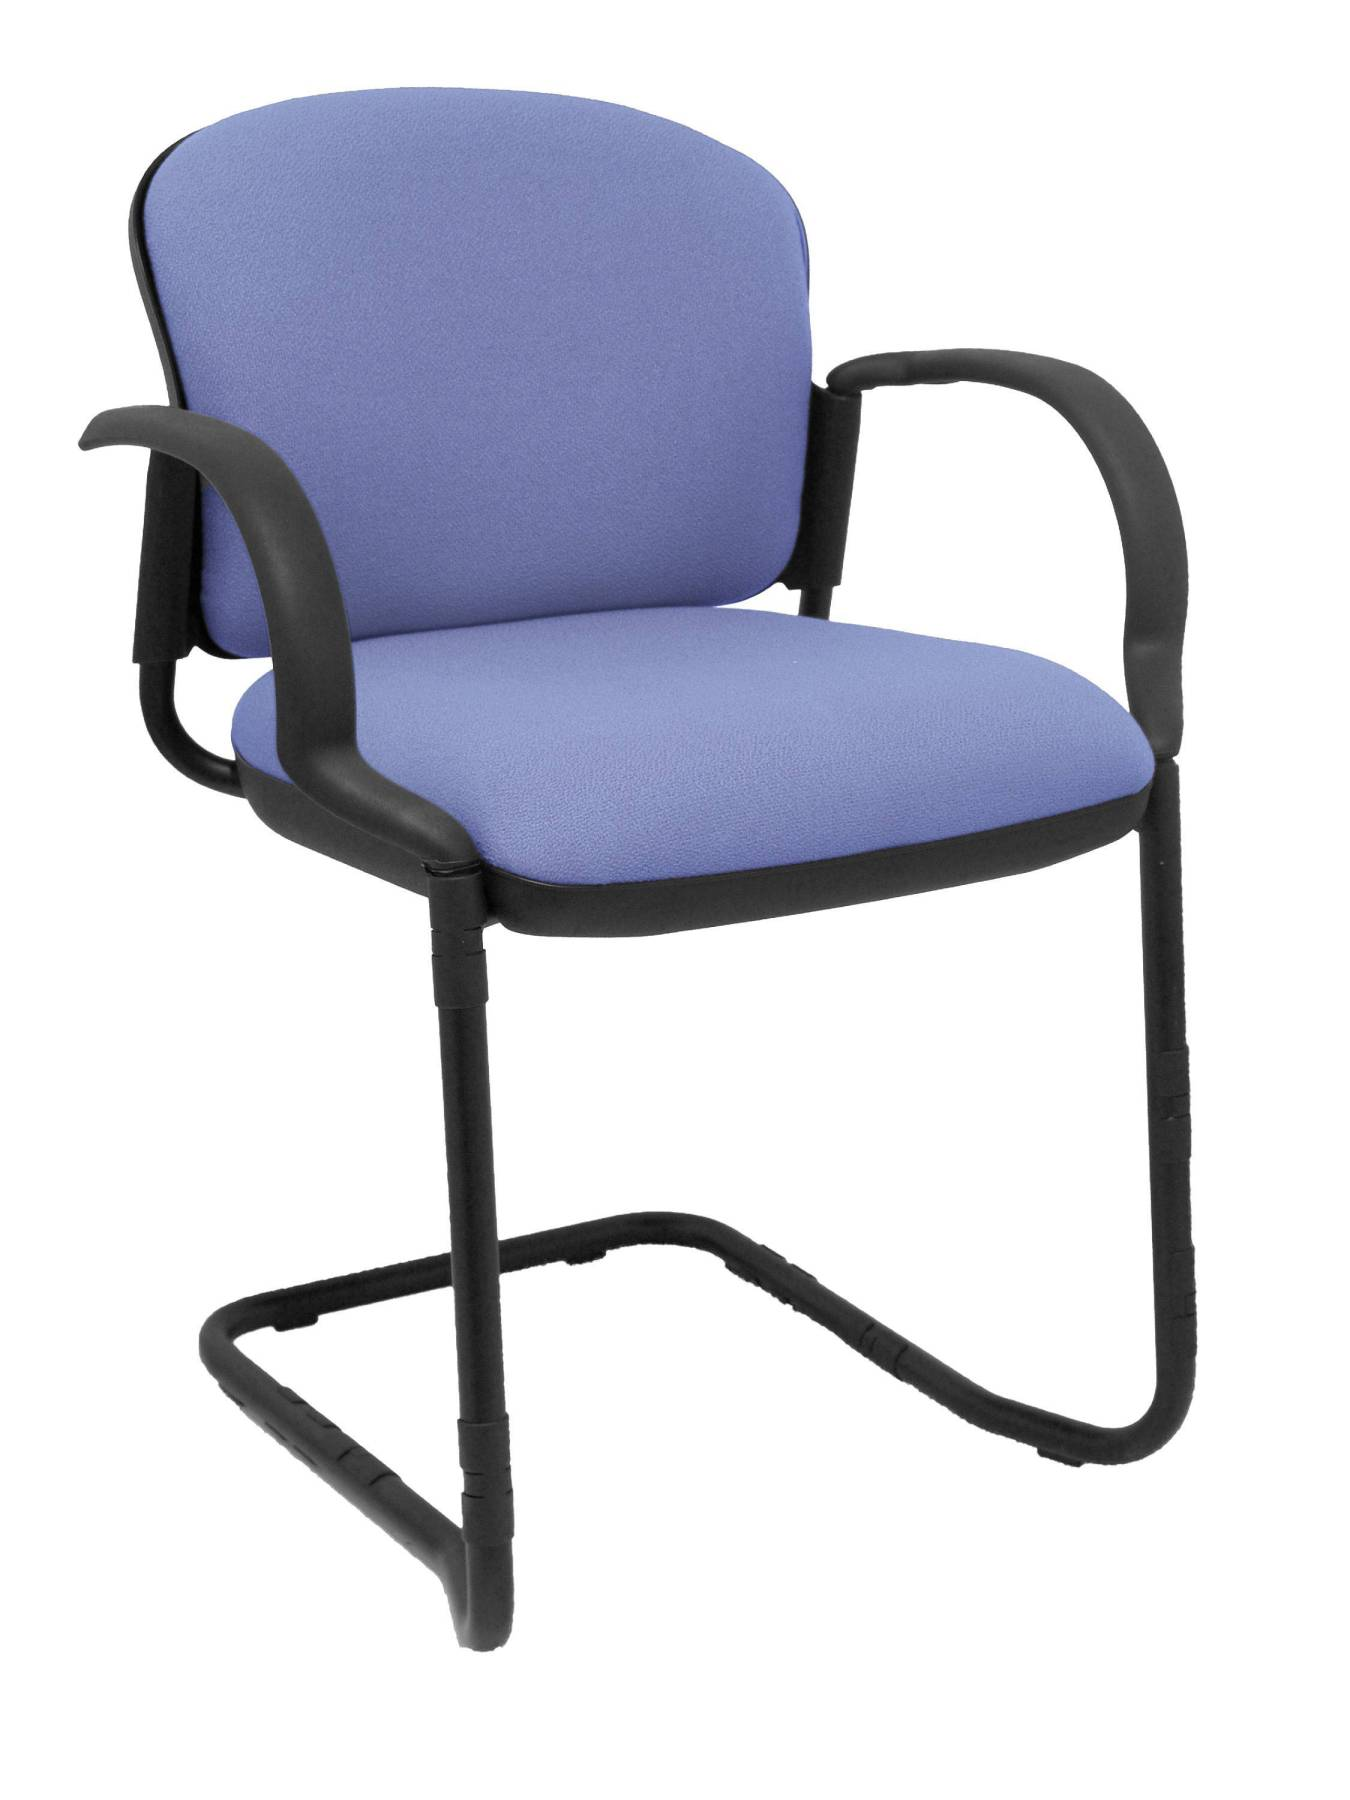 Visitor Chair/waiting Room With Arms Fixed Included And Skate Color Black-up Seat And Backstop Upholstered In Tej